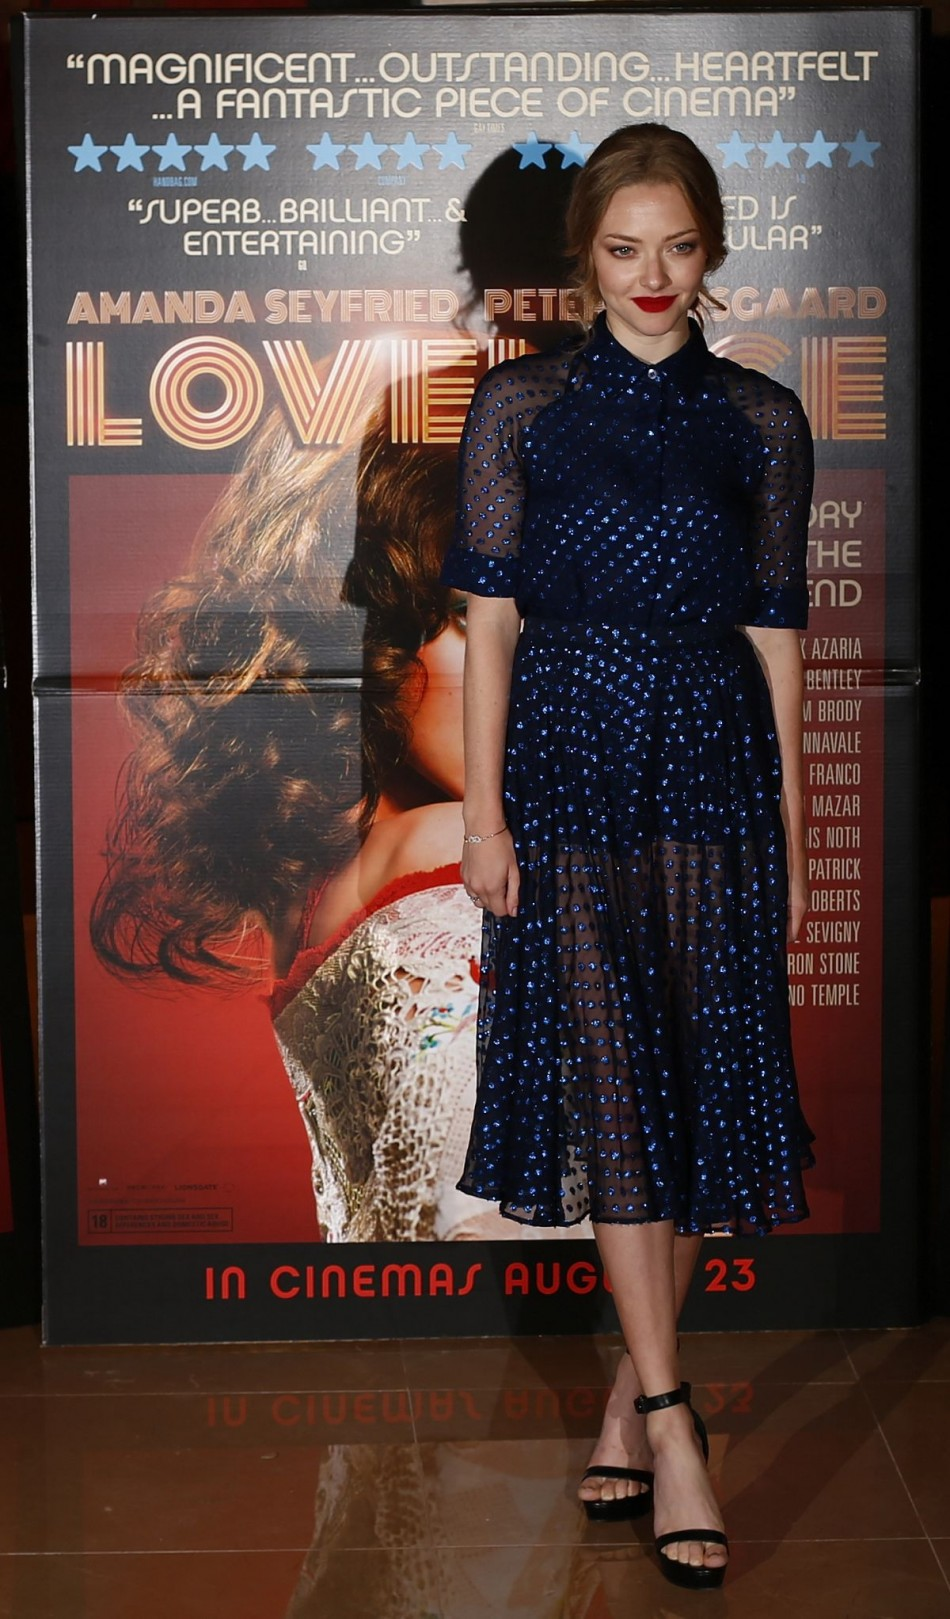 Amanda Seyfried wore a retro blue dress by Gucci to the UK premiere of Lovelace. (Photo: REUTERS/Andrew Winning)